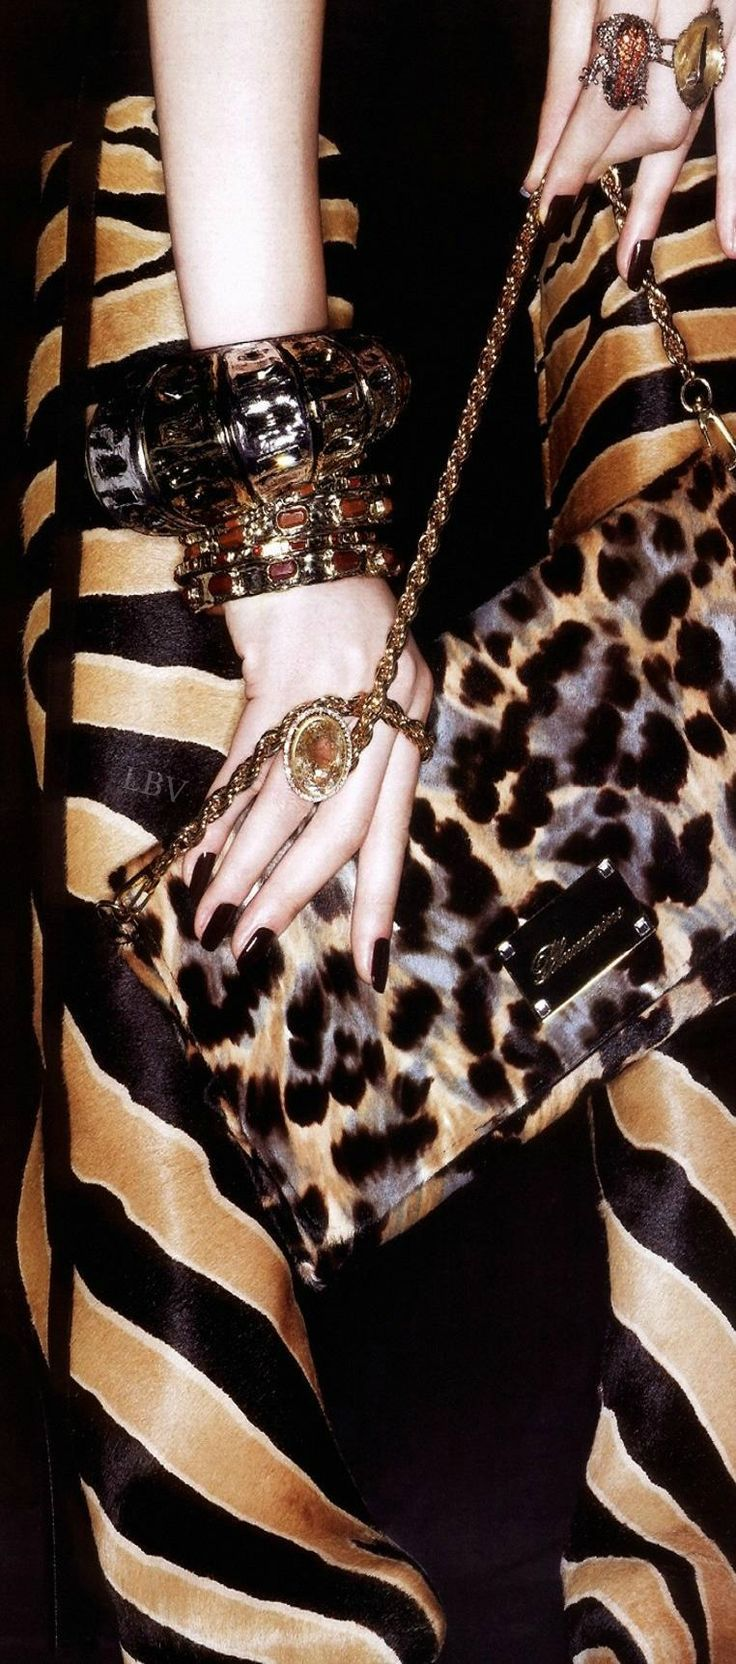 Animal Print fashion, editorial | LBV ♥✤